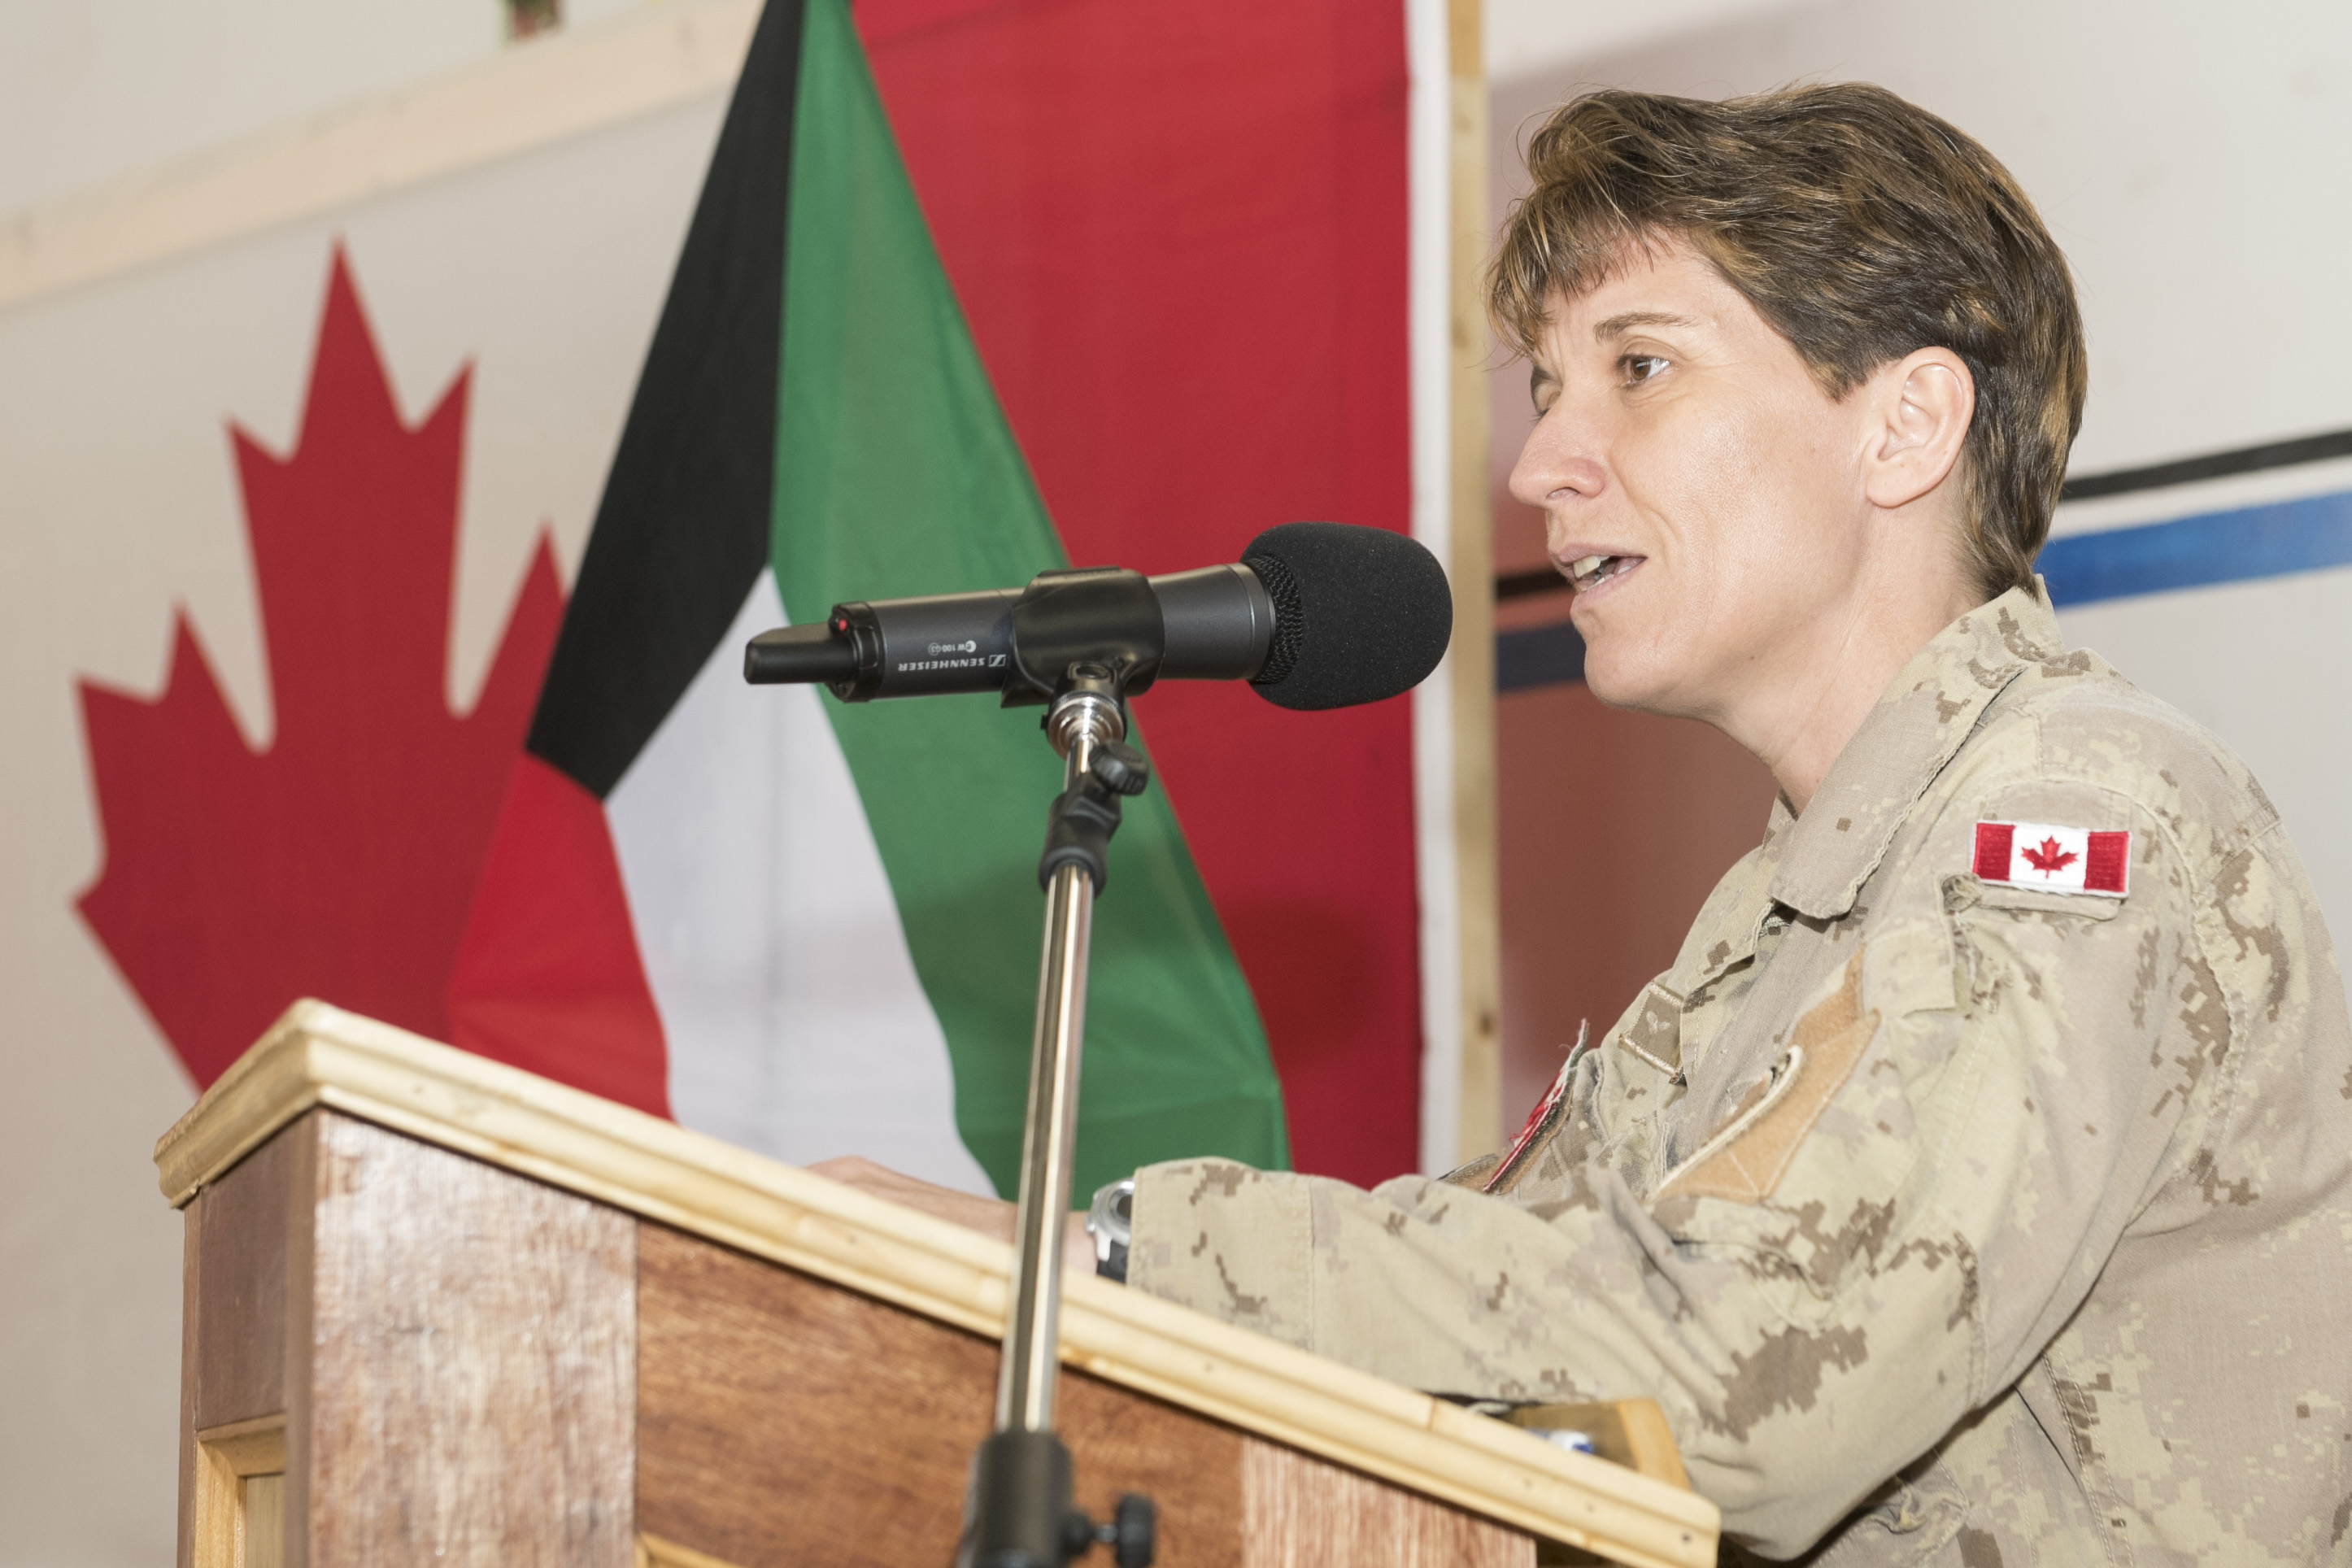 Brigadier-General Lise Bourgon, a CH-124 Sea King pilot, takes command of Joint Task Force-Iraq in Kuwait during Operation Impact on May 13, 2015. Brigadier-General Bourgon was the first woman to command a Canadian combat mission. PHOTO: KW01-2015-0014-018, DND-Operation Impact